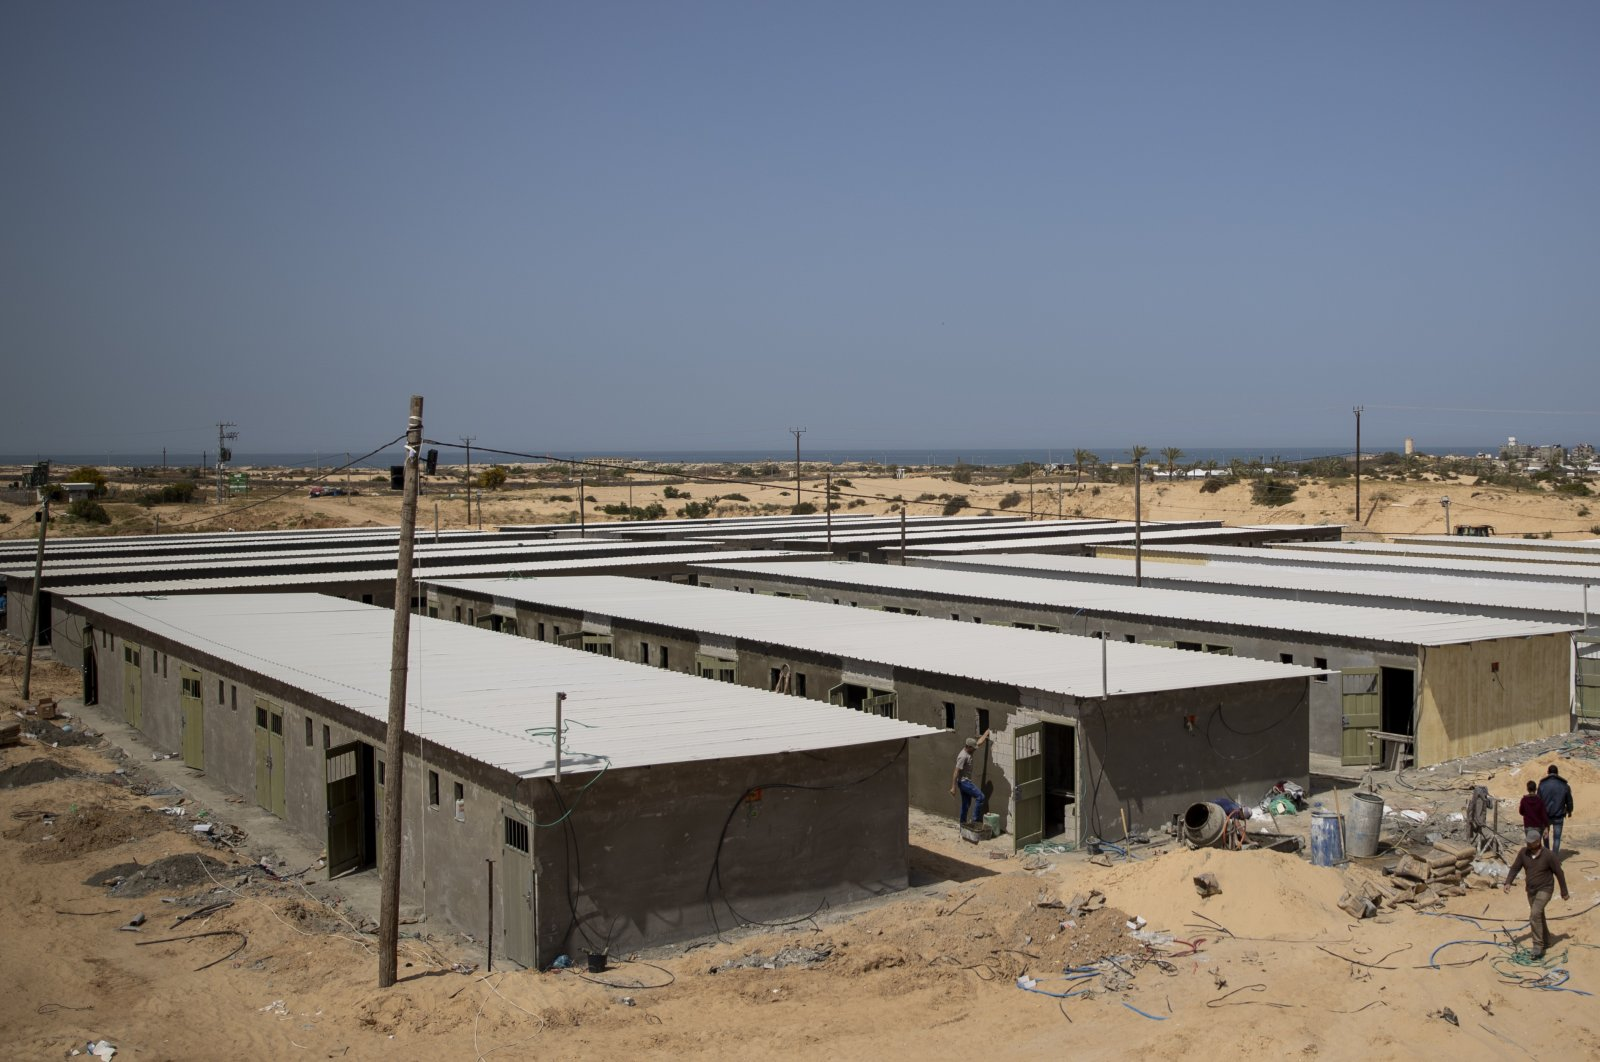 Palestinian workers construct a quarantine complex to be used for coronavirus cases, in the southern Gaza Strip, Monday, March 30, 2020. (AP Photo)